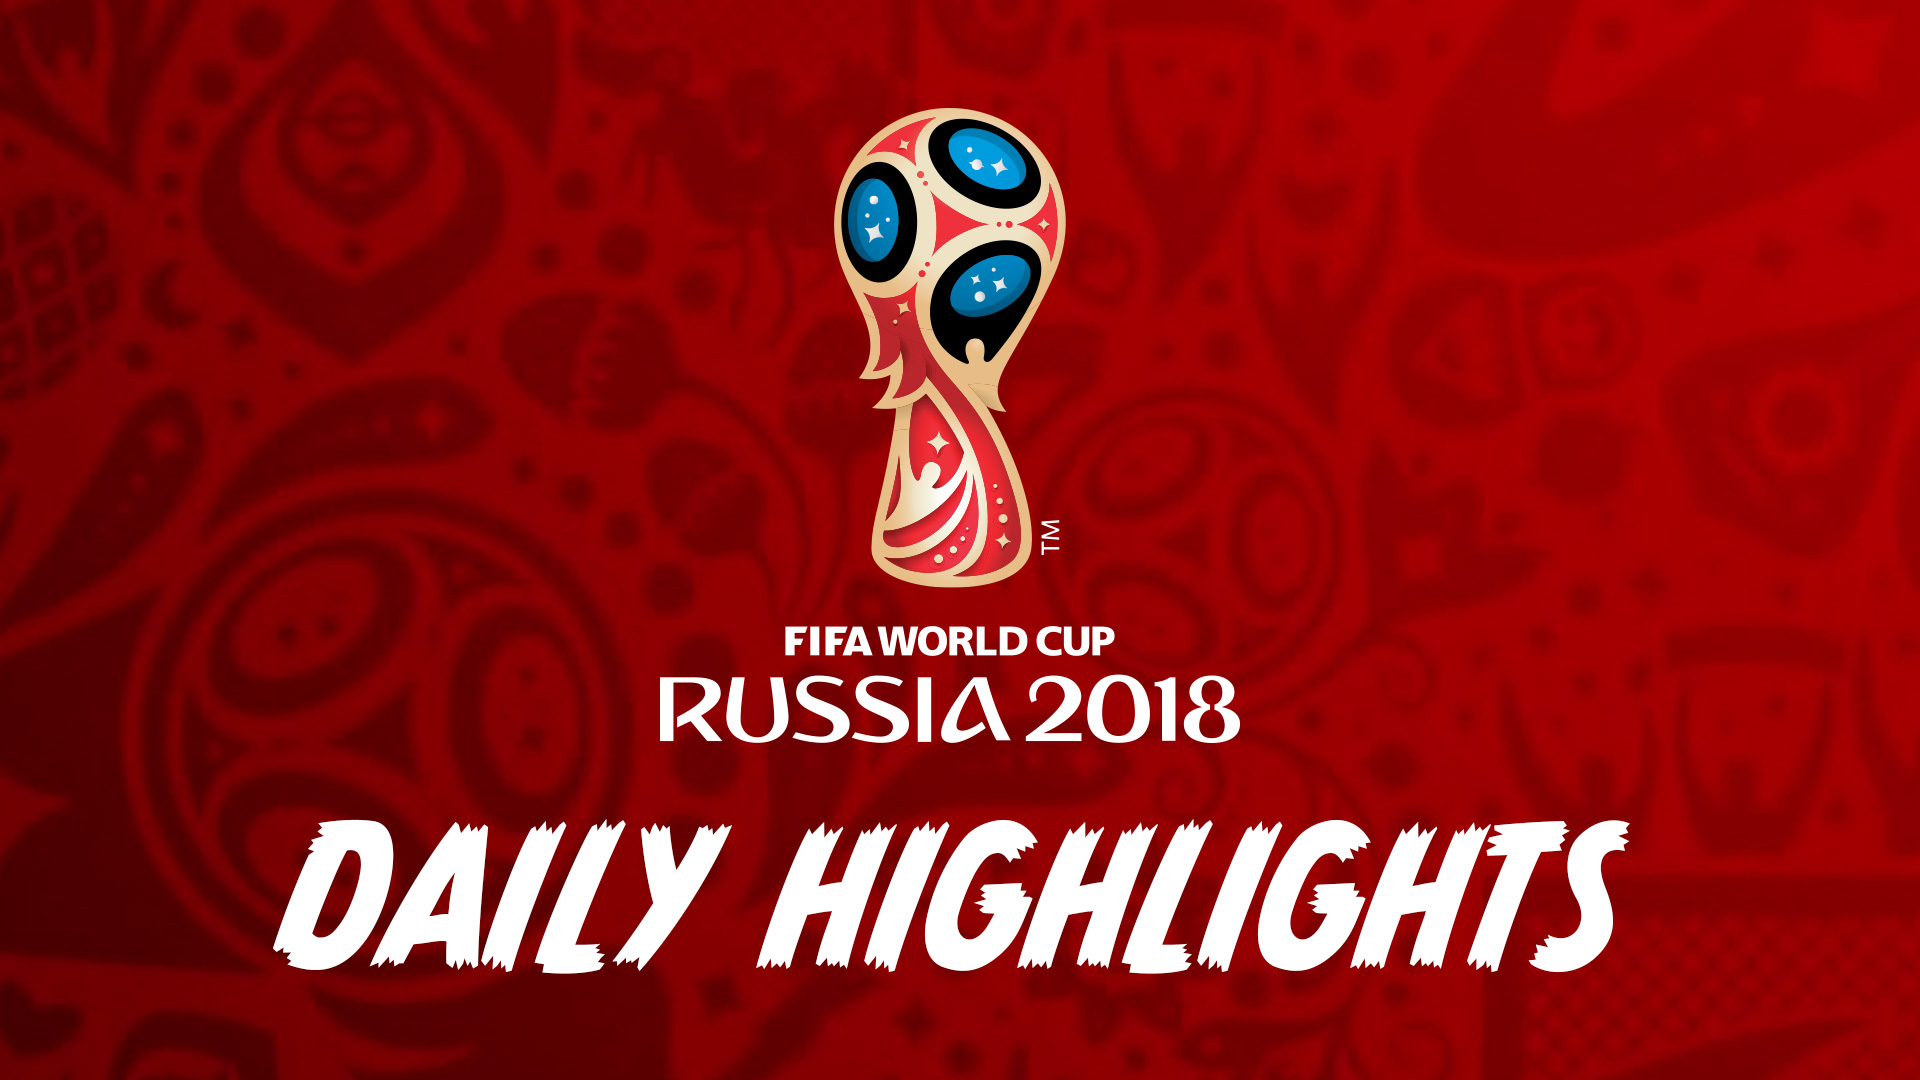 2018 FIFA WC DAILY HIGHLIGHTS